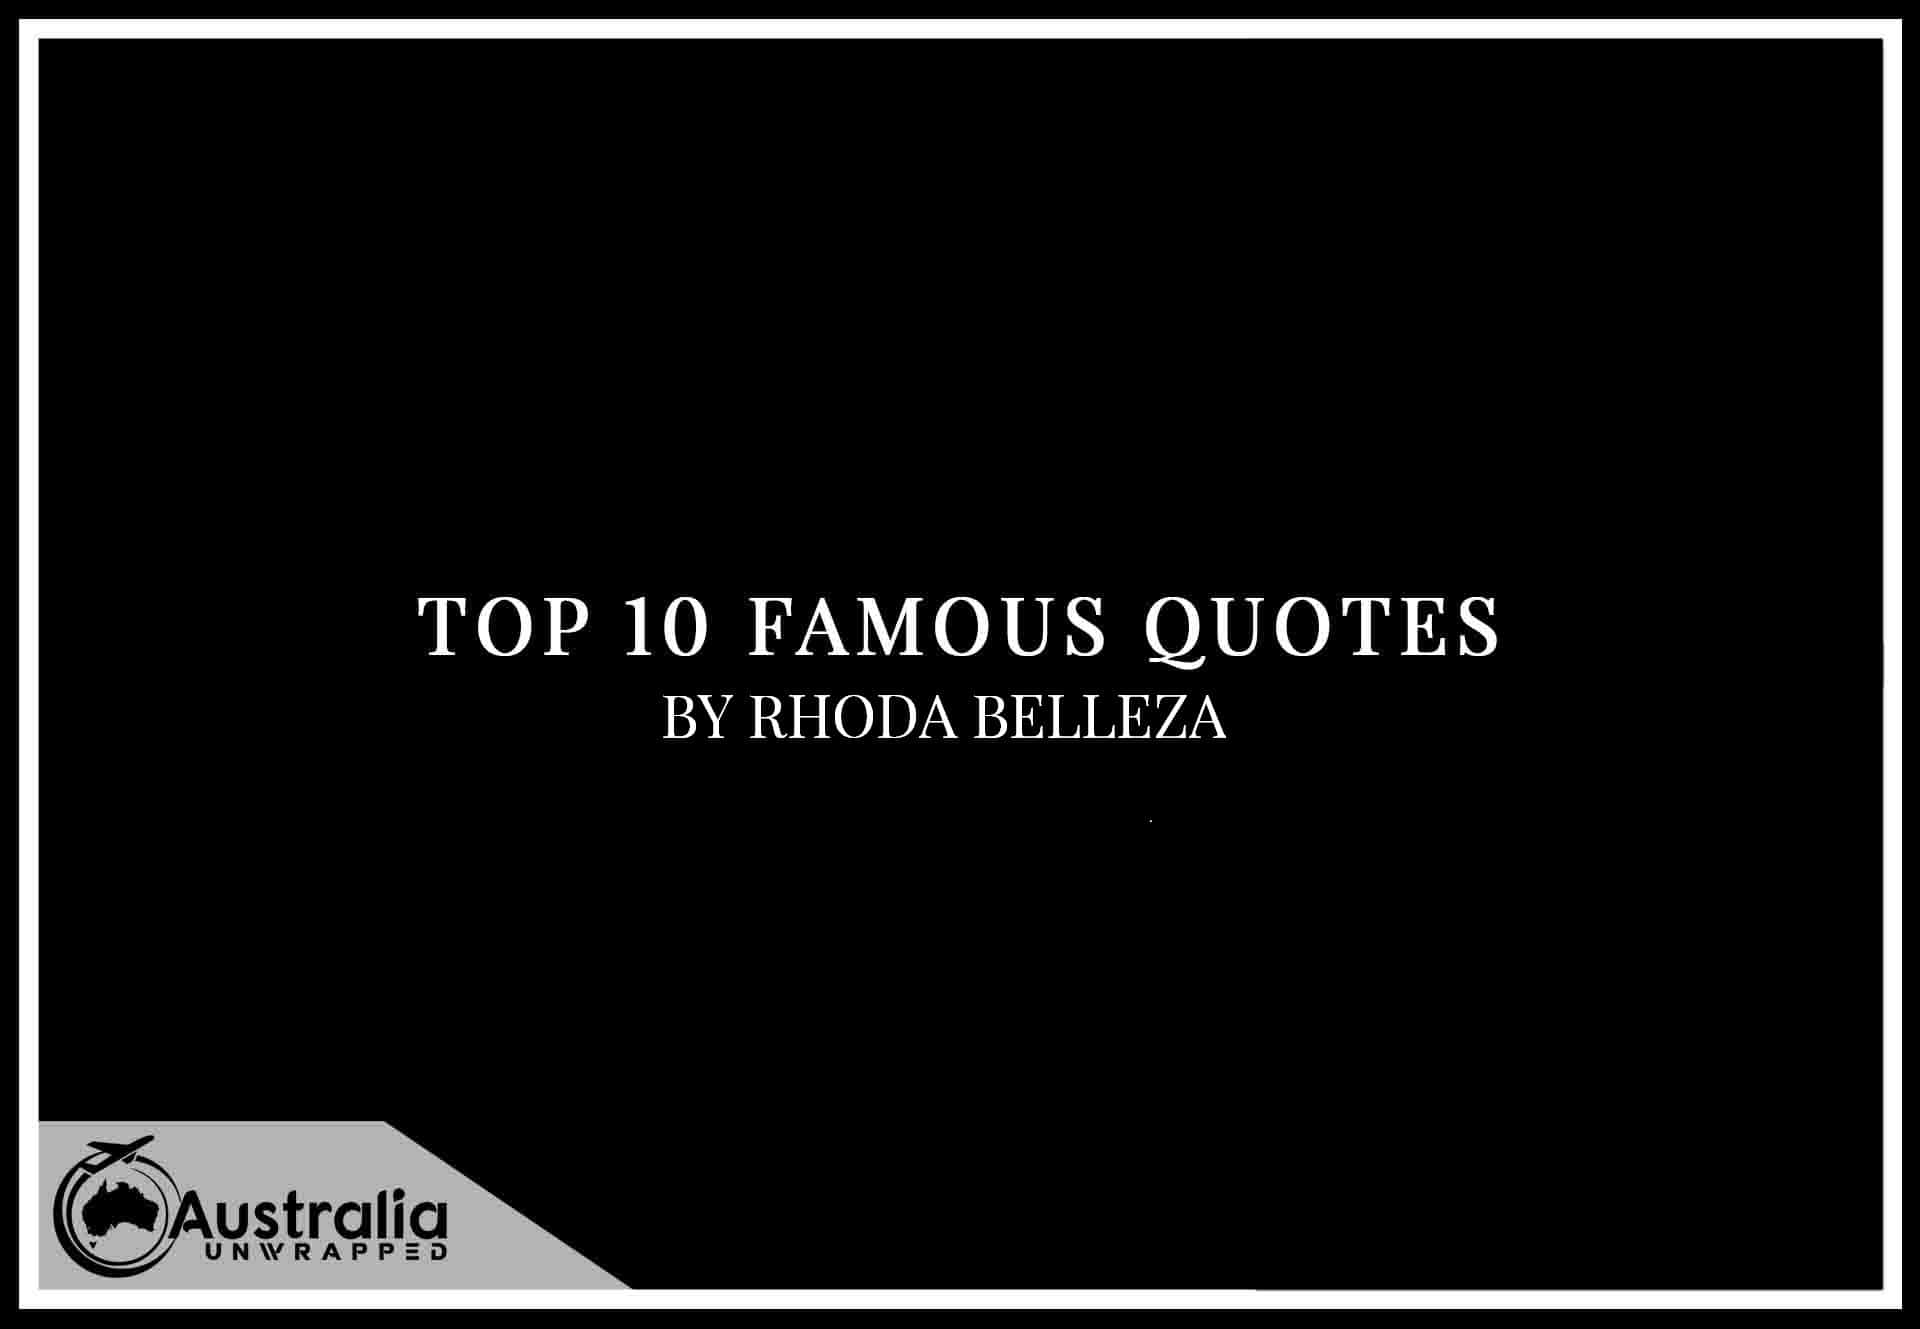 Top 10 Famous Quotes by Author Rhoda Belleza